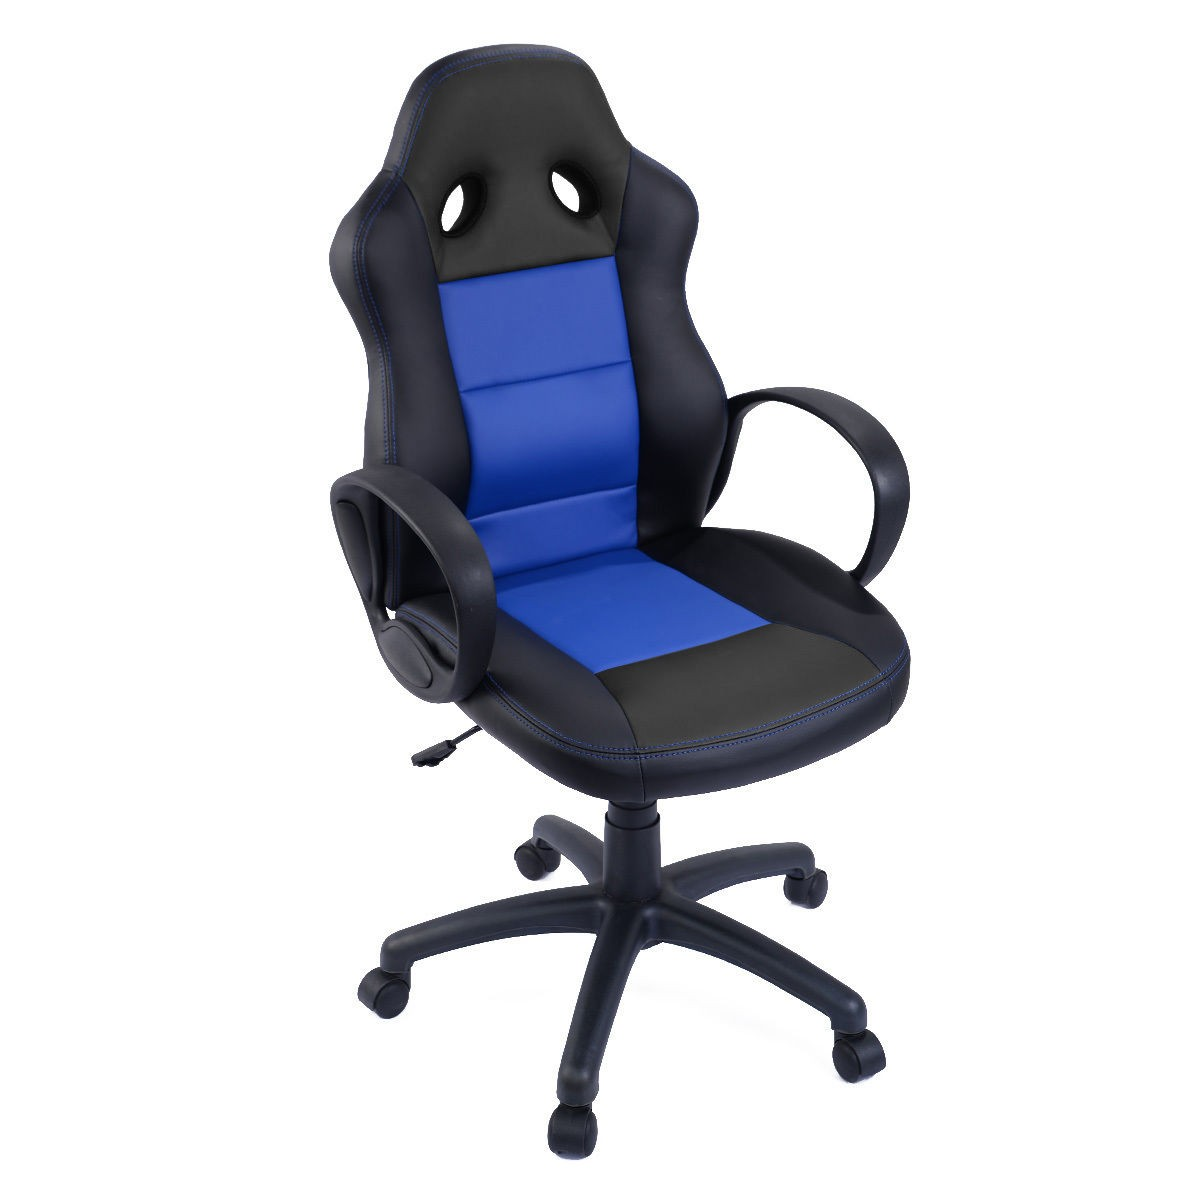 Pu Leather High Back Bucket Seat Office Desk Chair Race Car Style Gaming